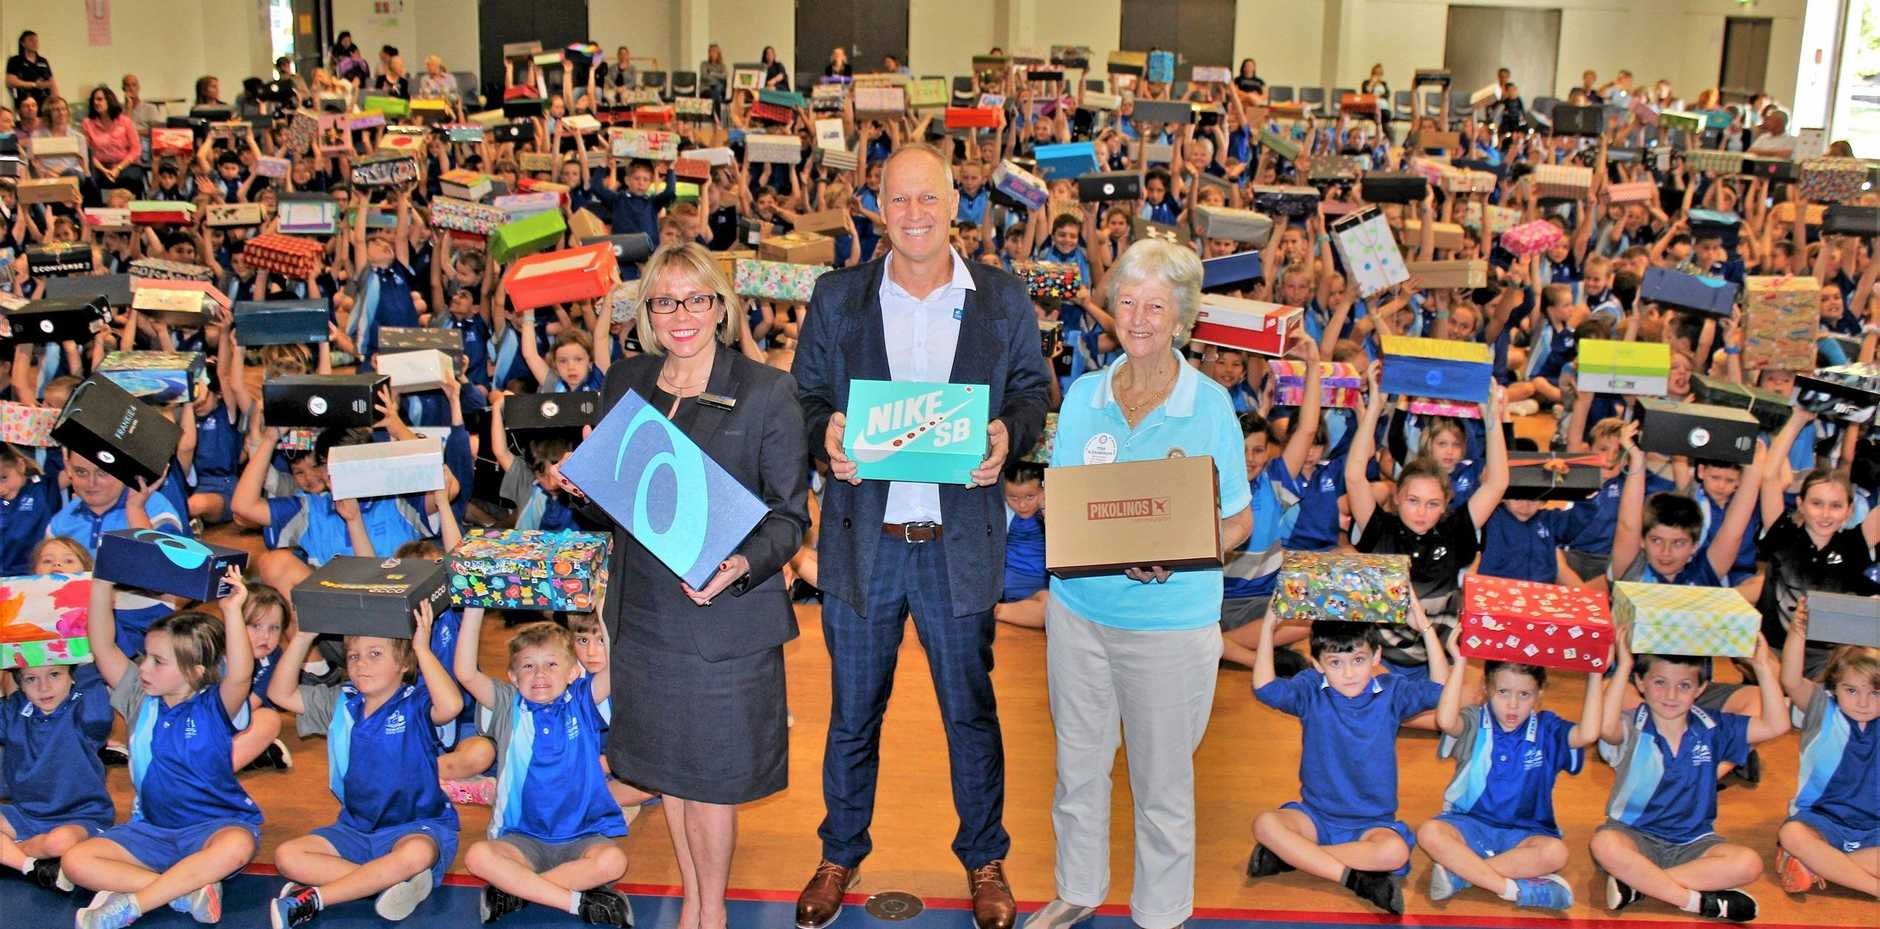 BIG HEARTS: Pupils at Tewantin State School have put together more than 500 education care packages to send to children in East Timor.